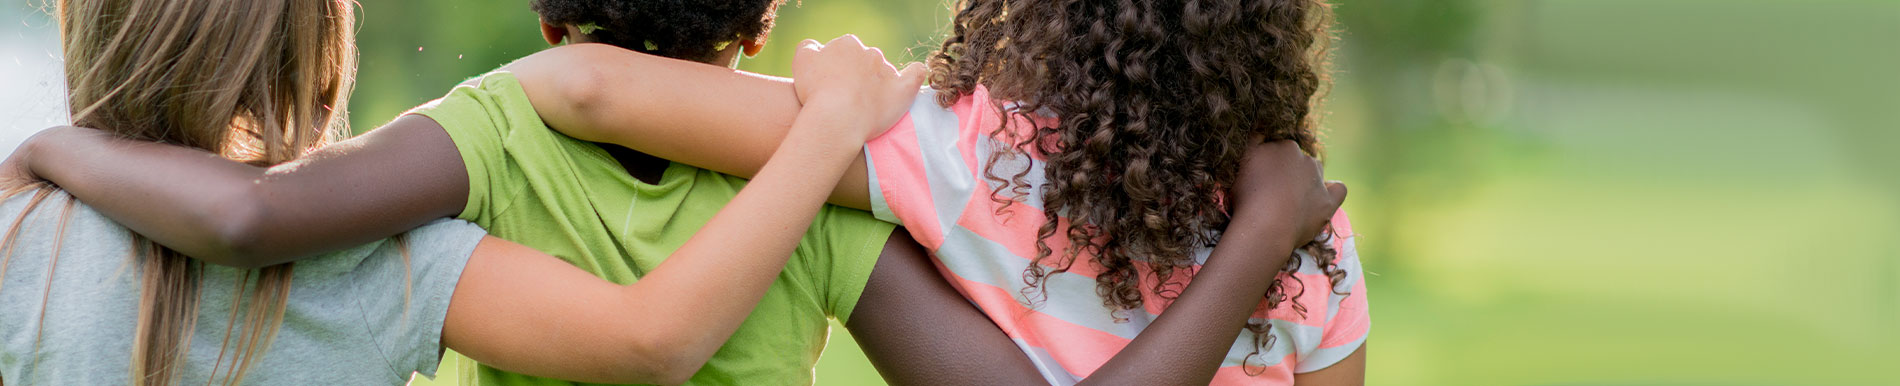 https://www.healthychildren.org/SiteCollectionImage-Homepage-Banners/racism-banner.jpg?csf=1&e=9IssD9